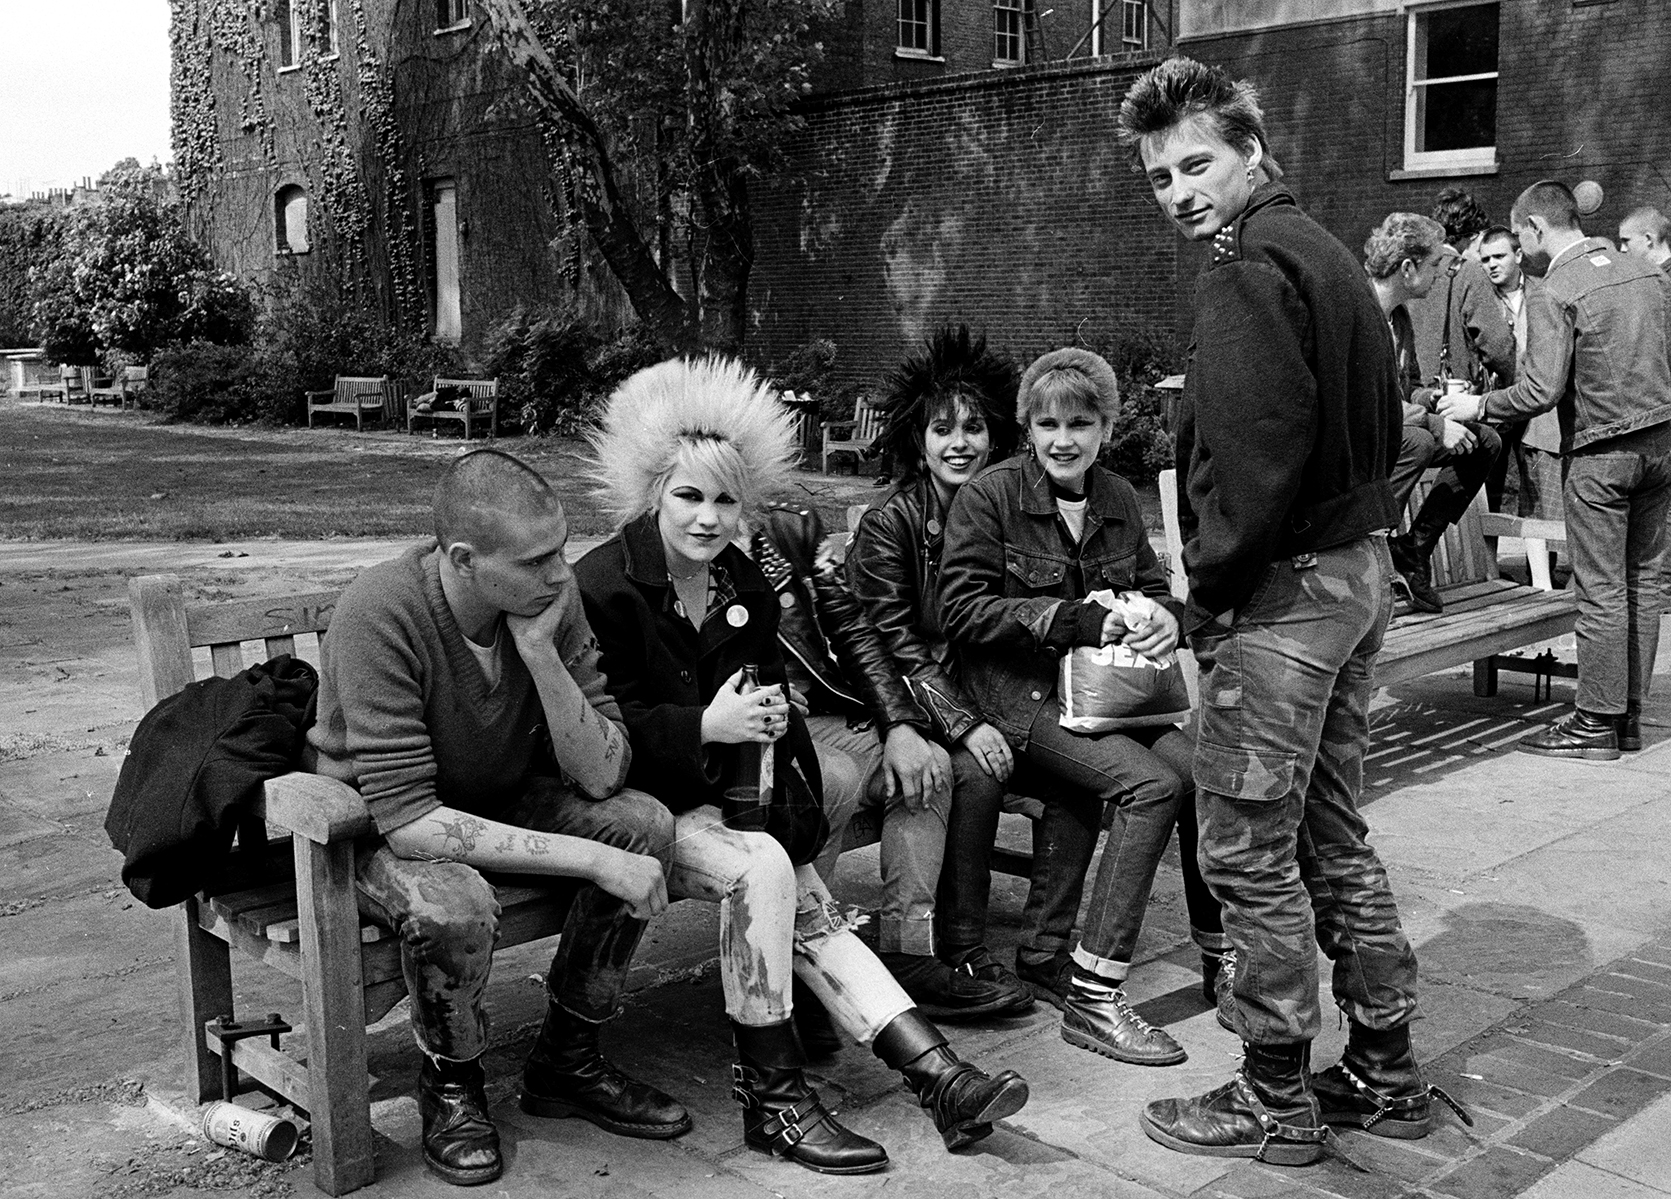 Punks on the Kings Road by Janette Beckman courtesy of Fahey/Klein